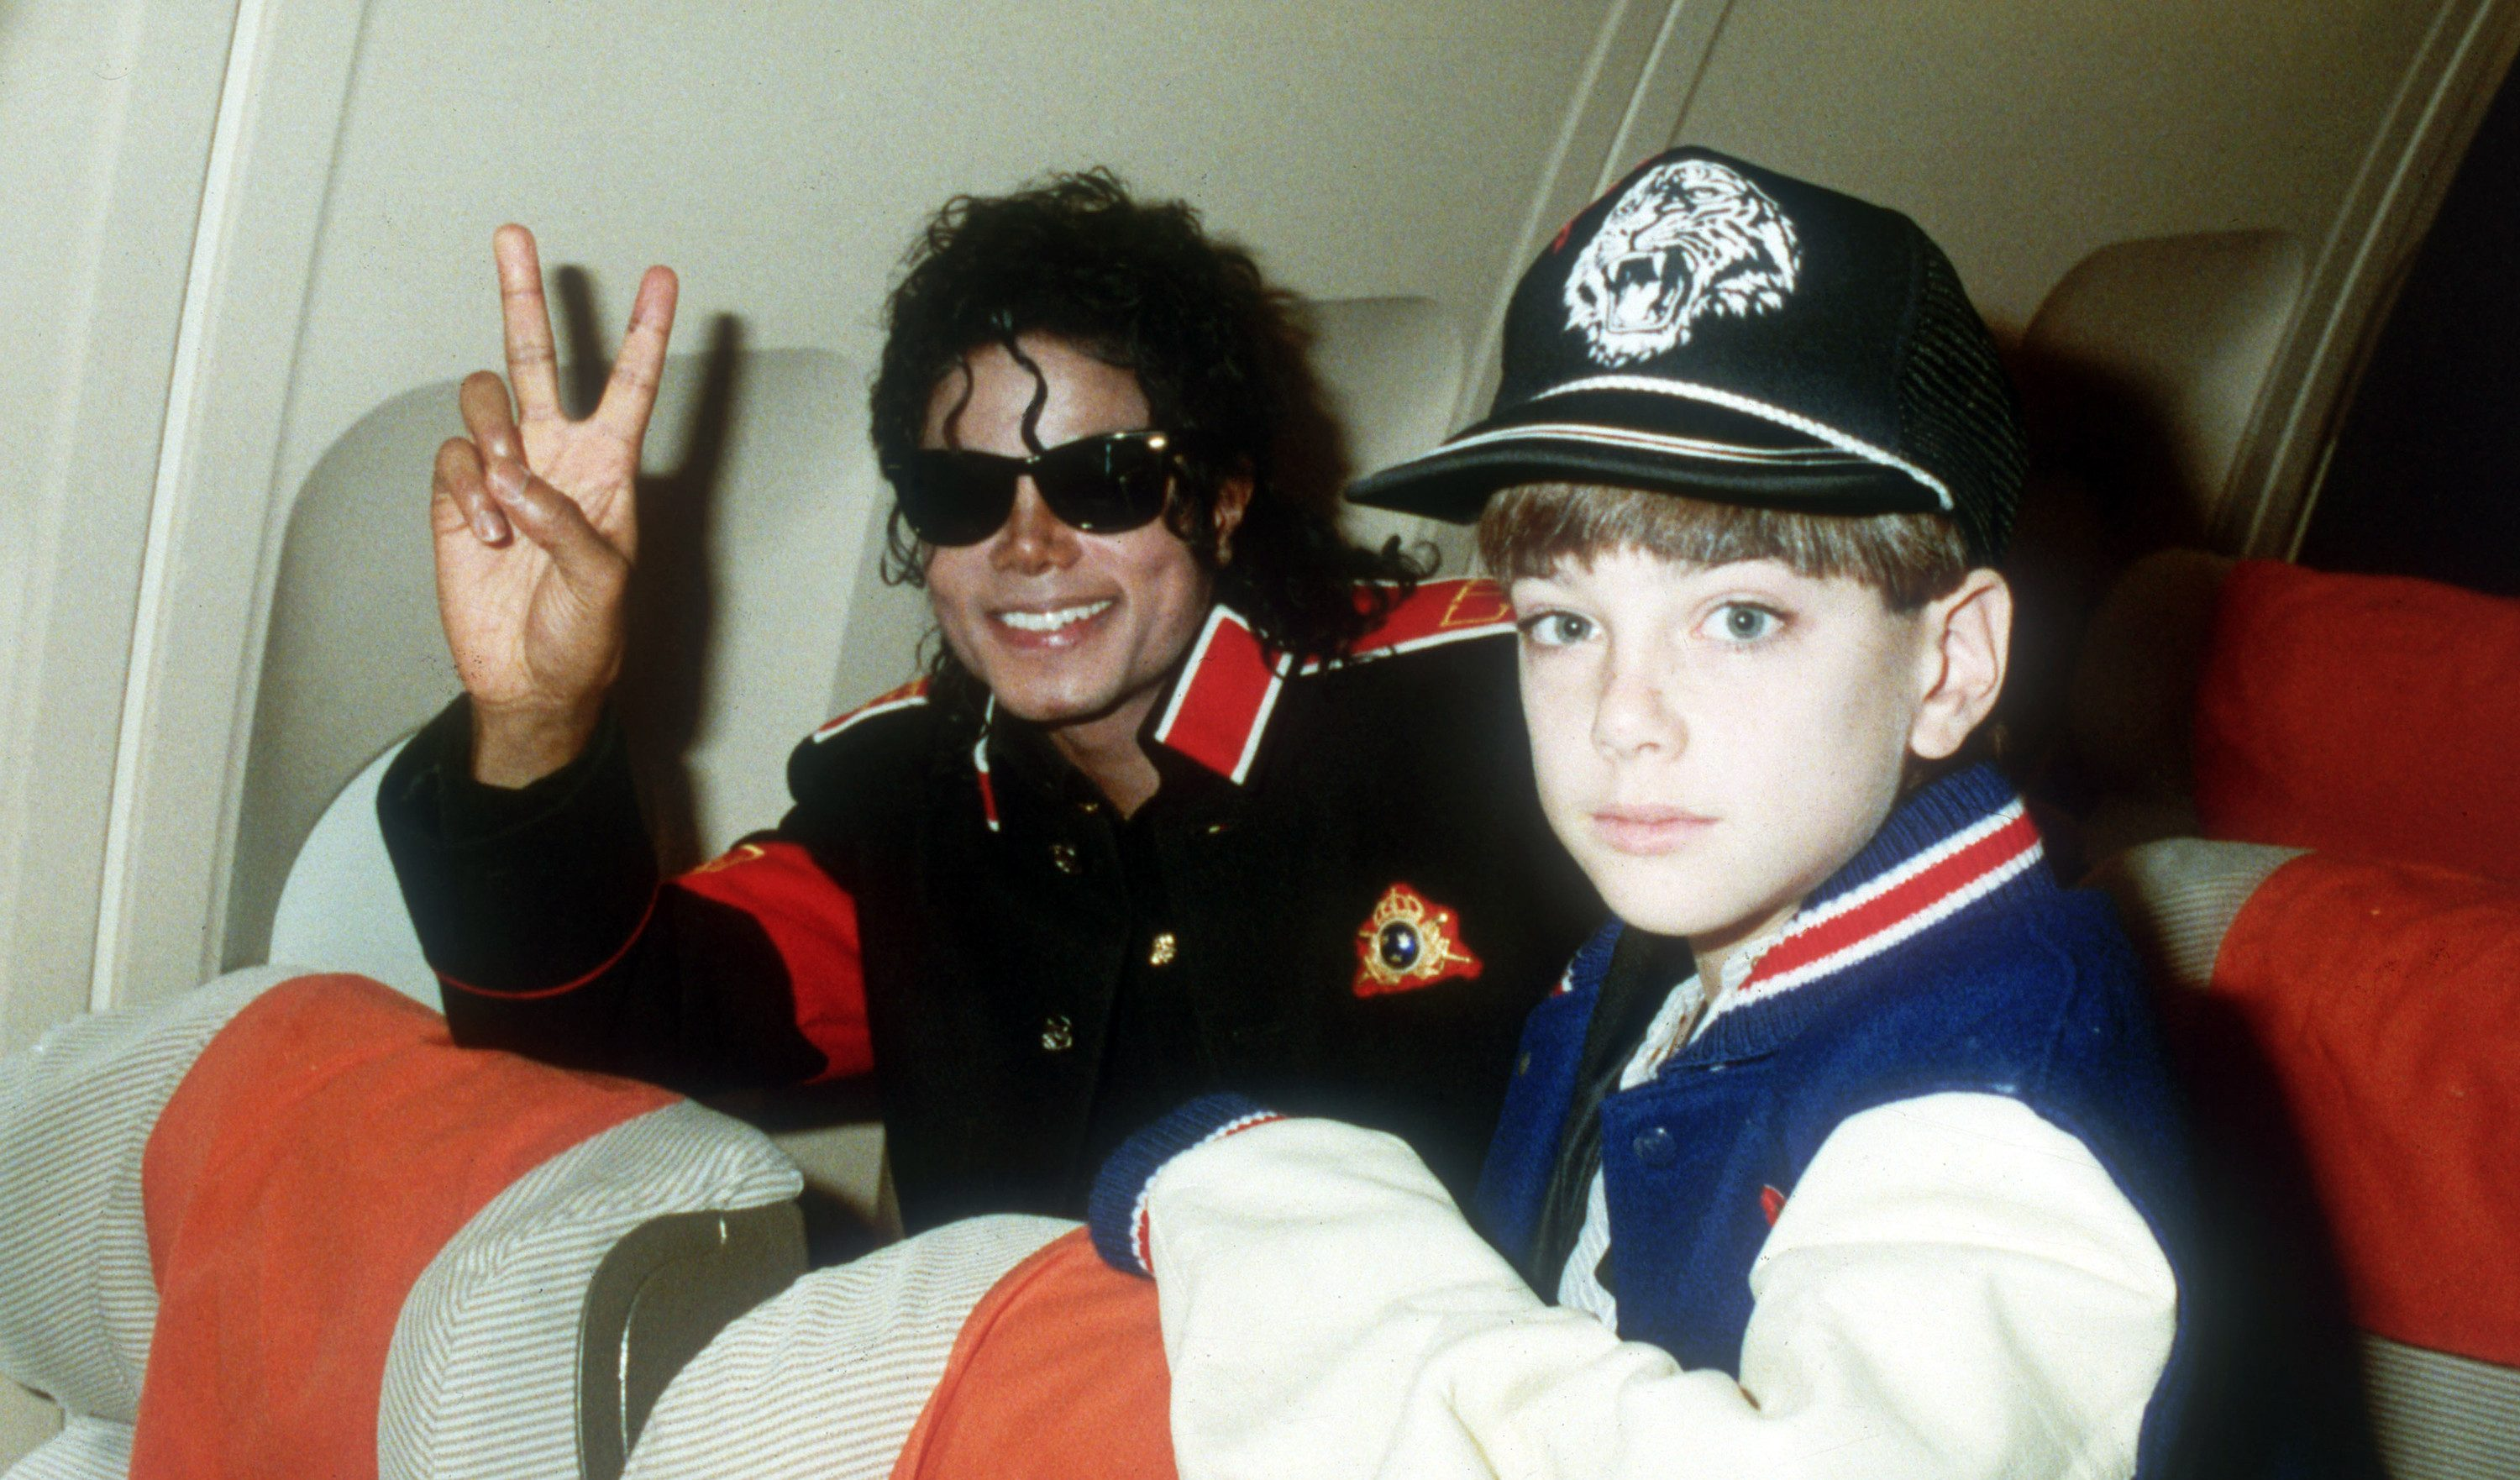 UNSPECIFIED – JULY 11: Michael Jackson with 10 year old Jimmy Suchcraft on the tour plane on 11th of July 1988.(Photo by Dave Hogan/Getty Images)